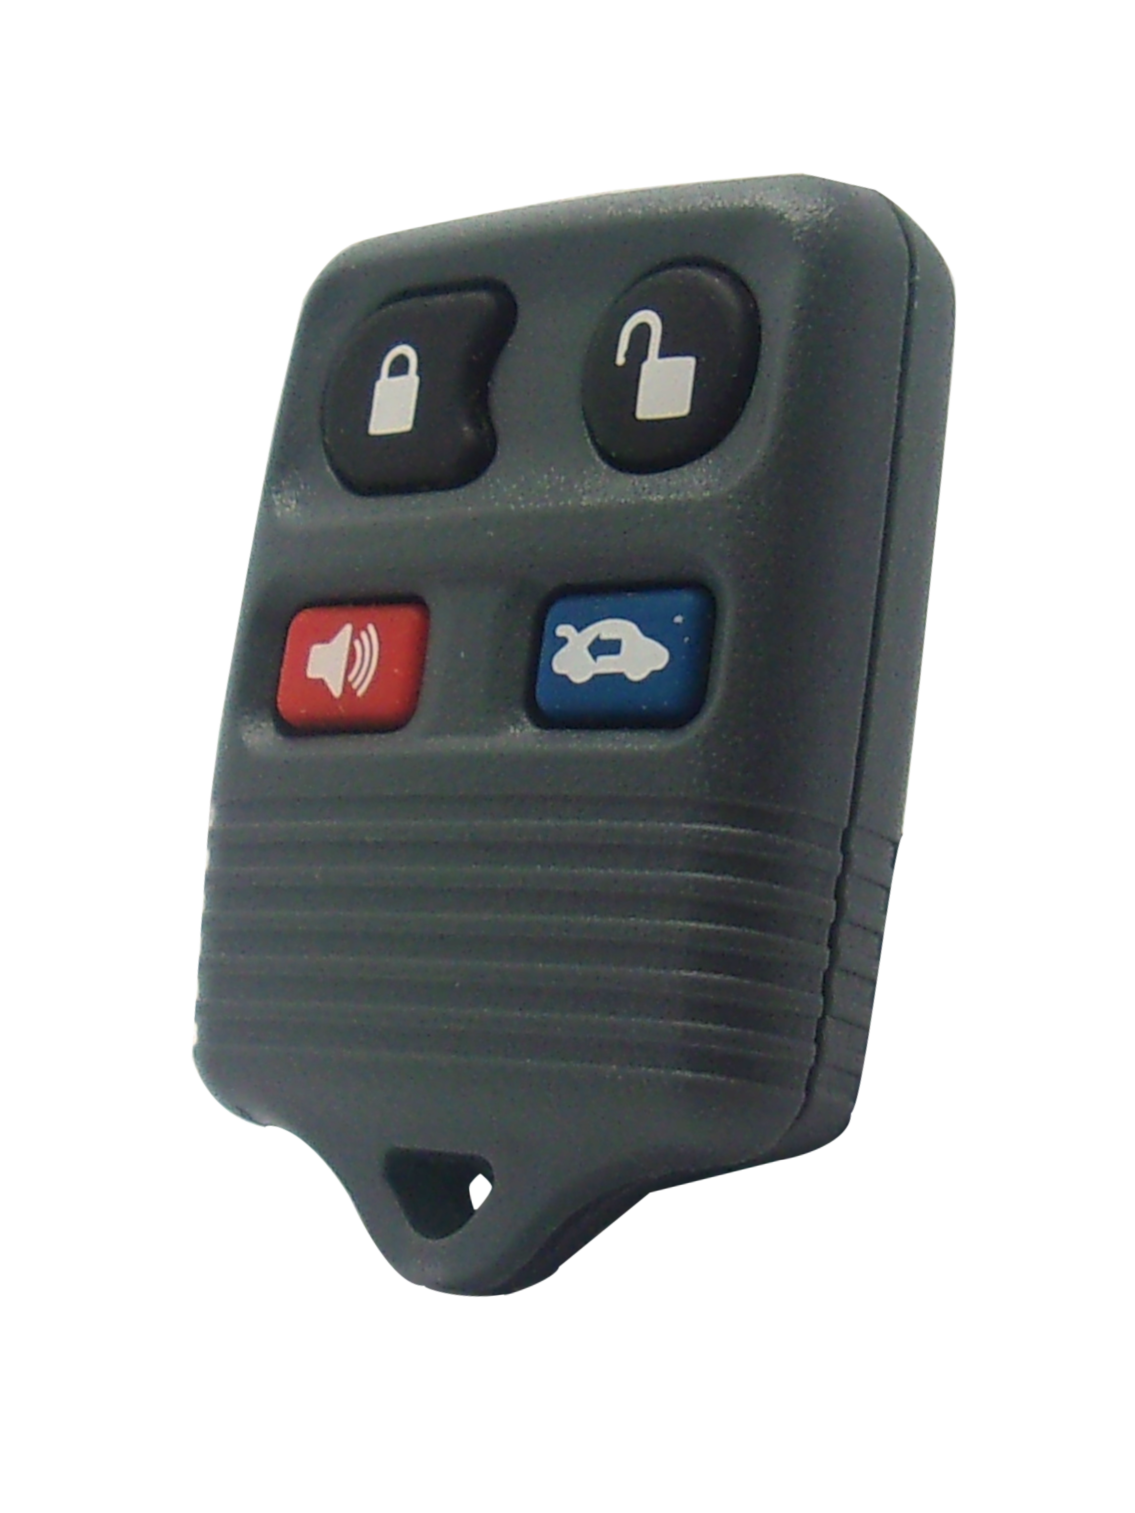 Keyless Entry Car Remote - 4 Button